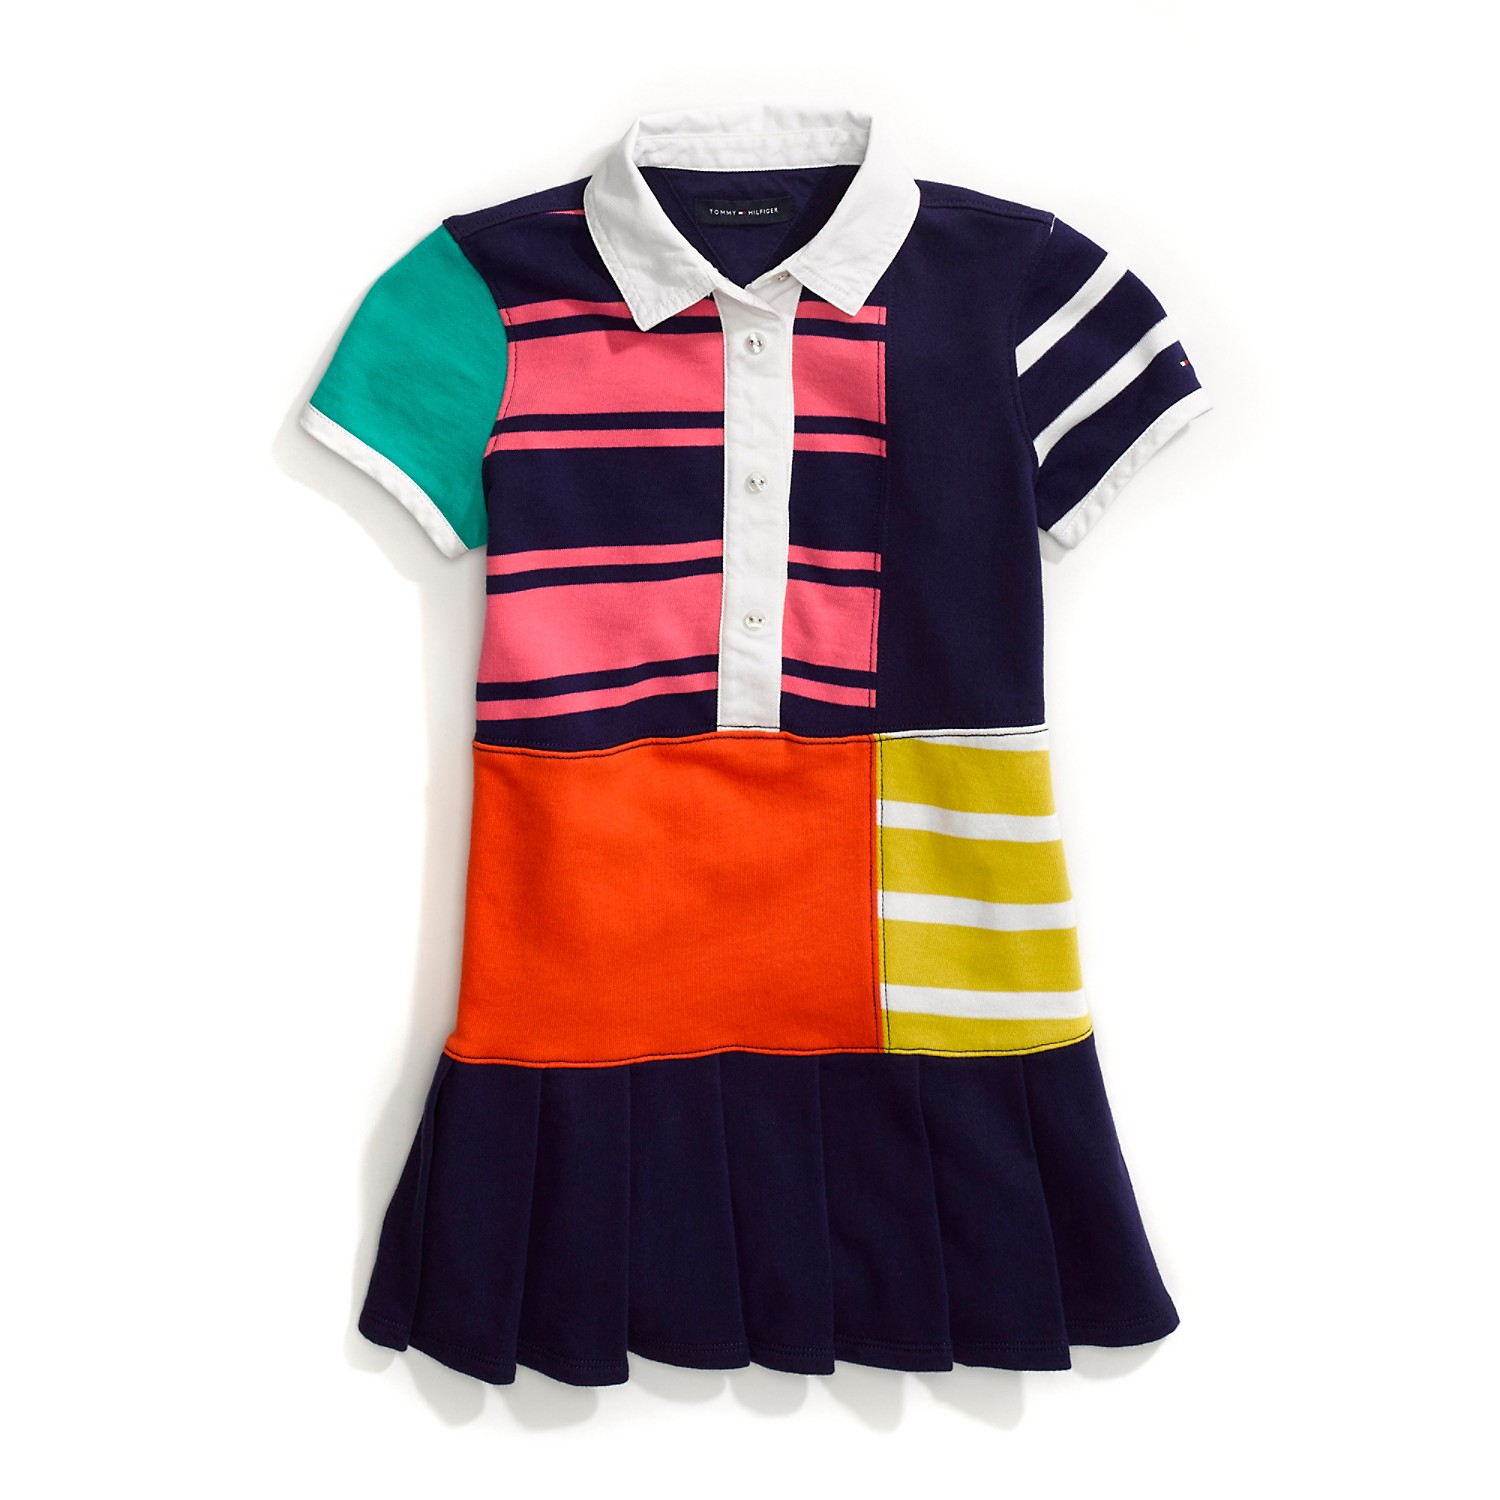 Tommy Hilfiger's new adaptive patchwork polo dress